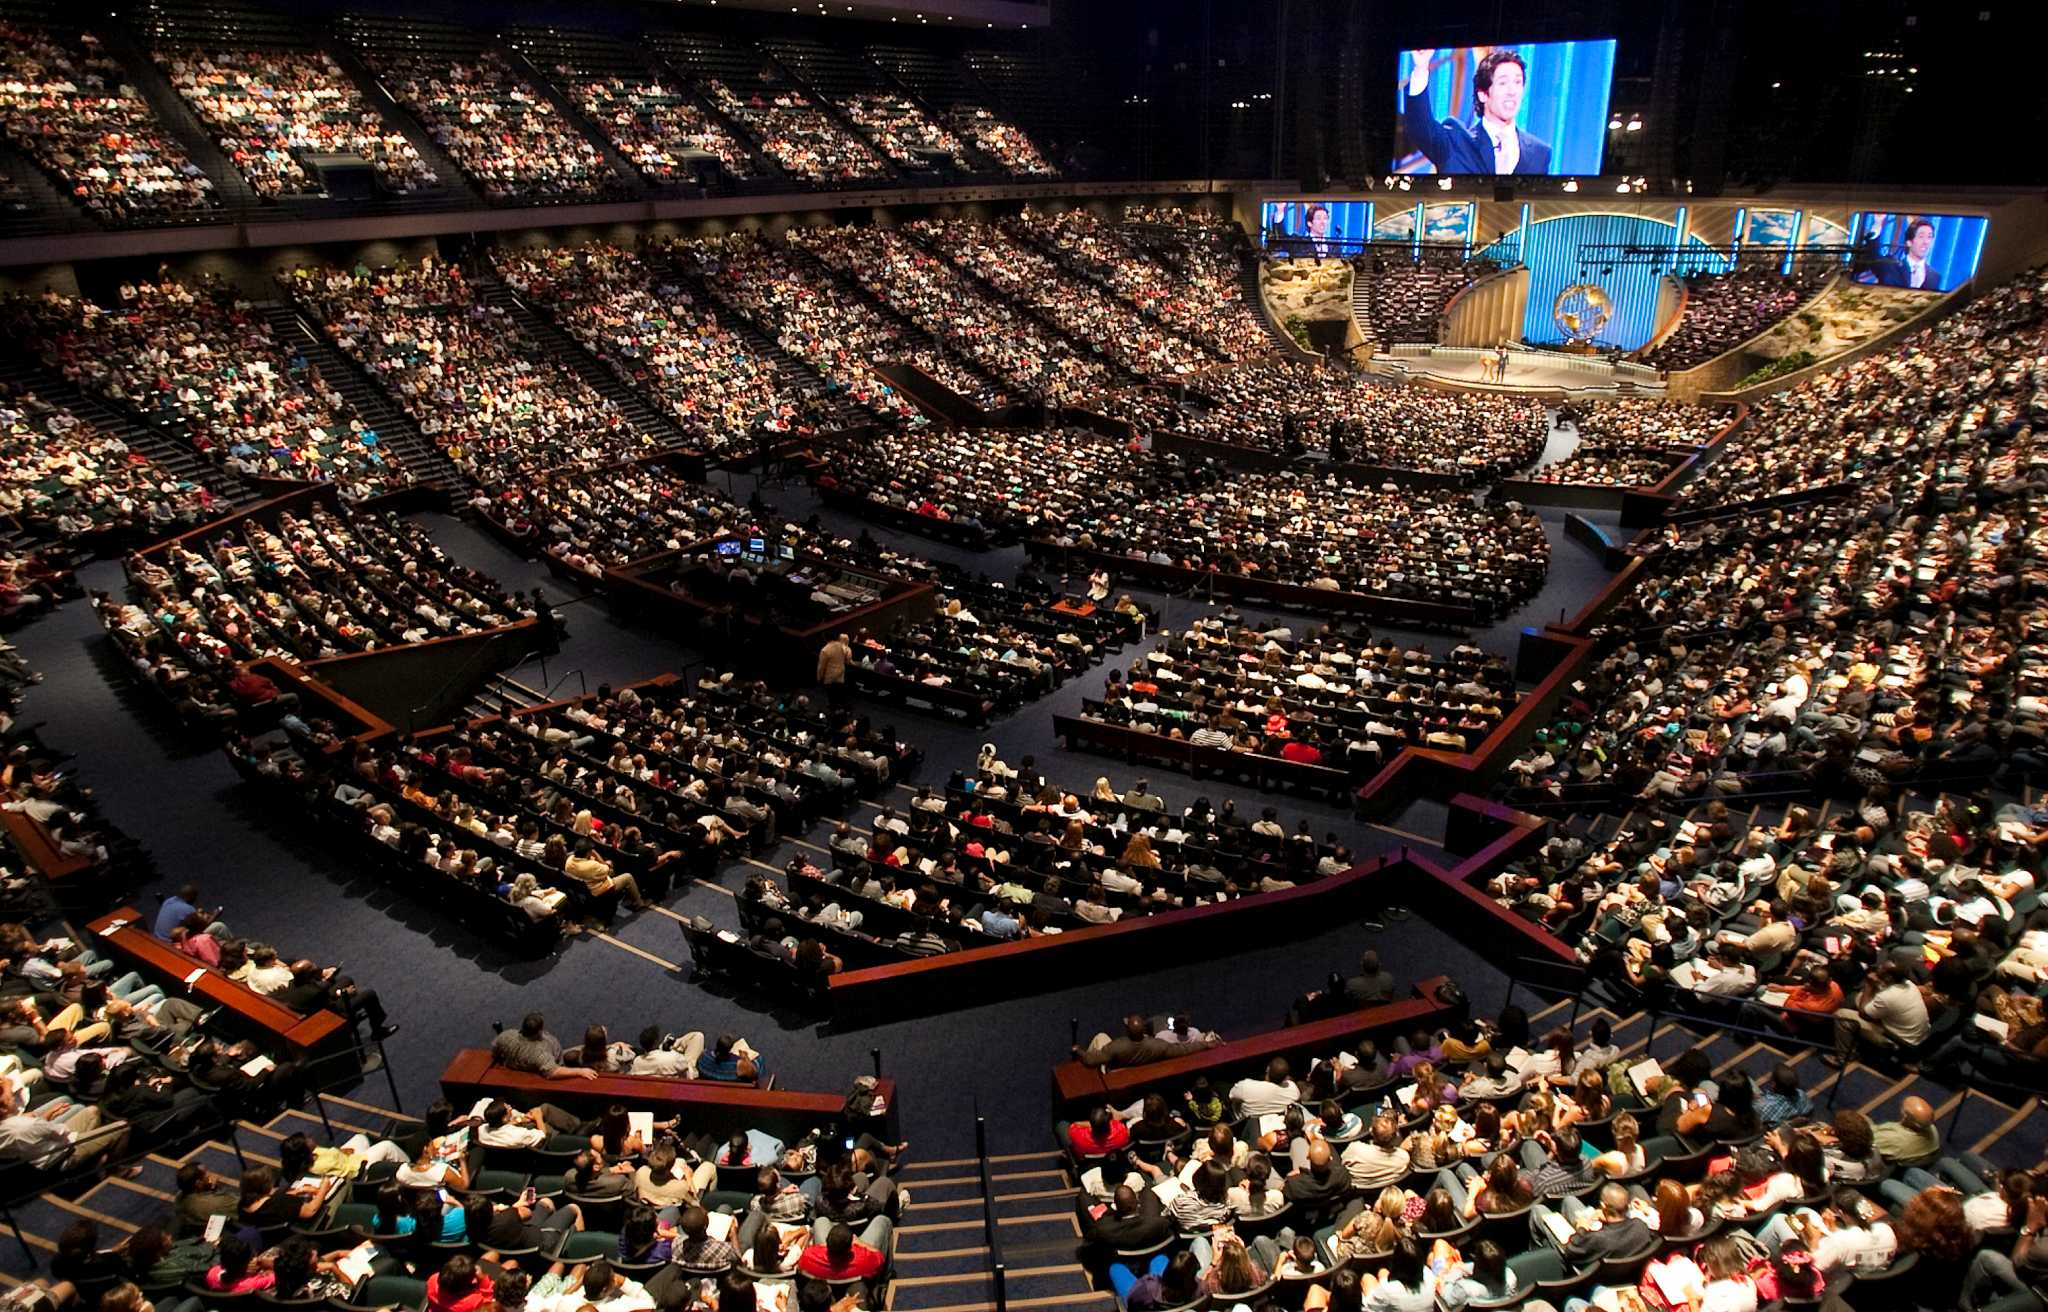 10 Years Ago Lakewood Church Joel Osteen Move Into